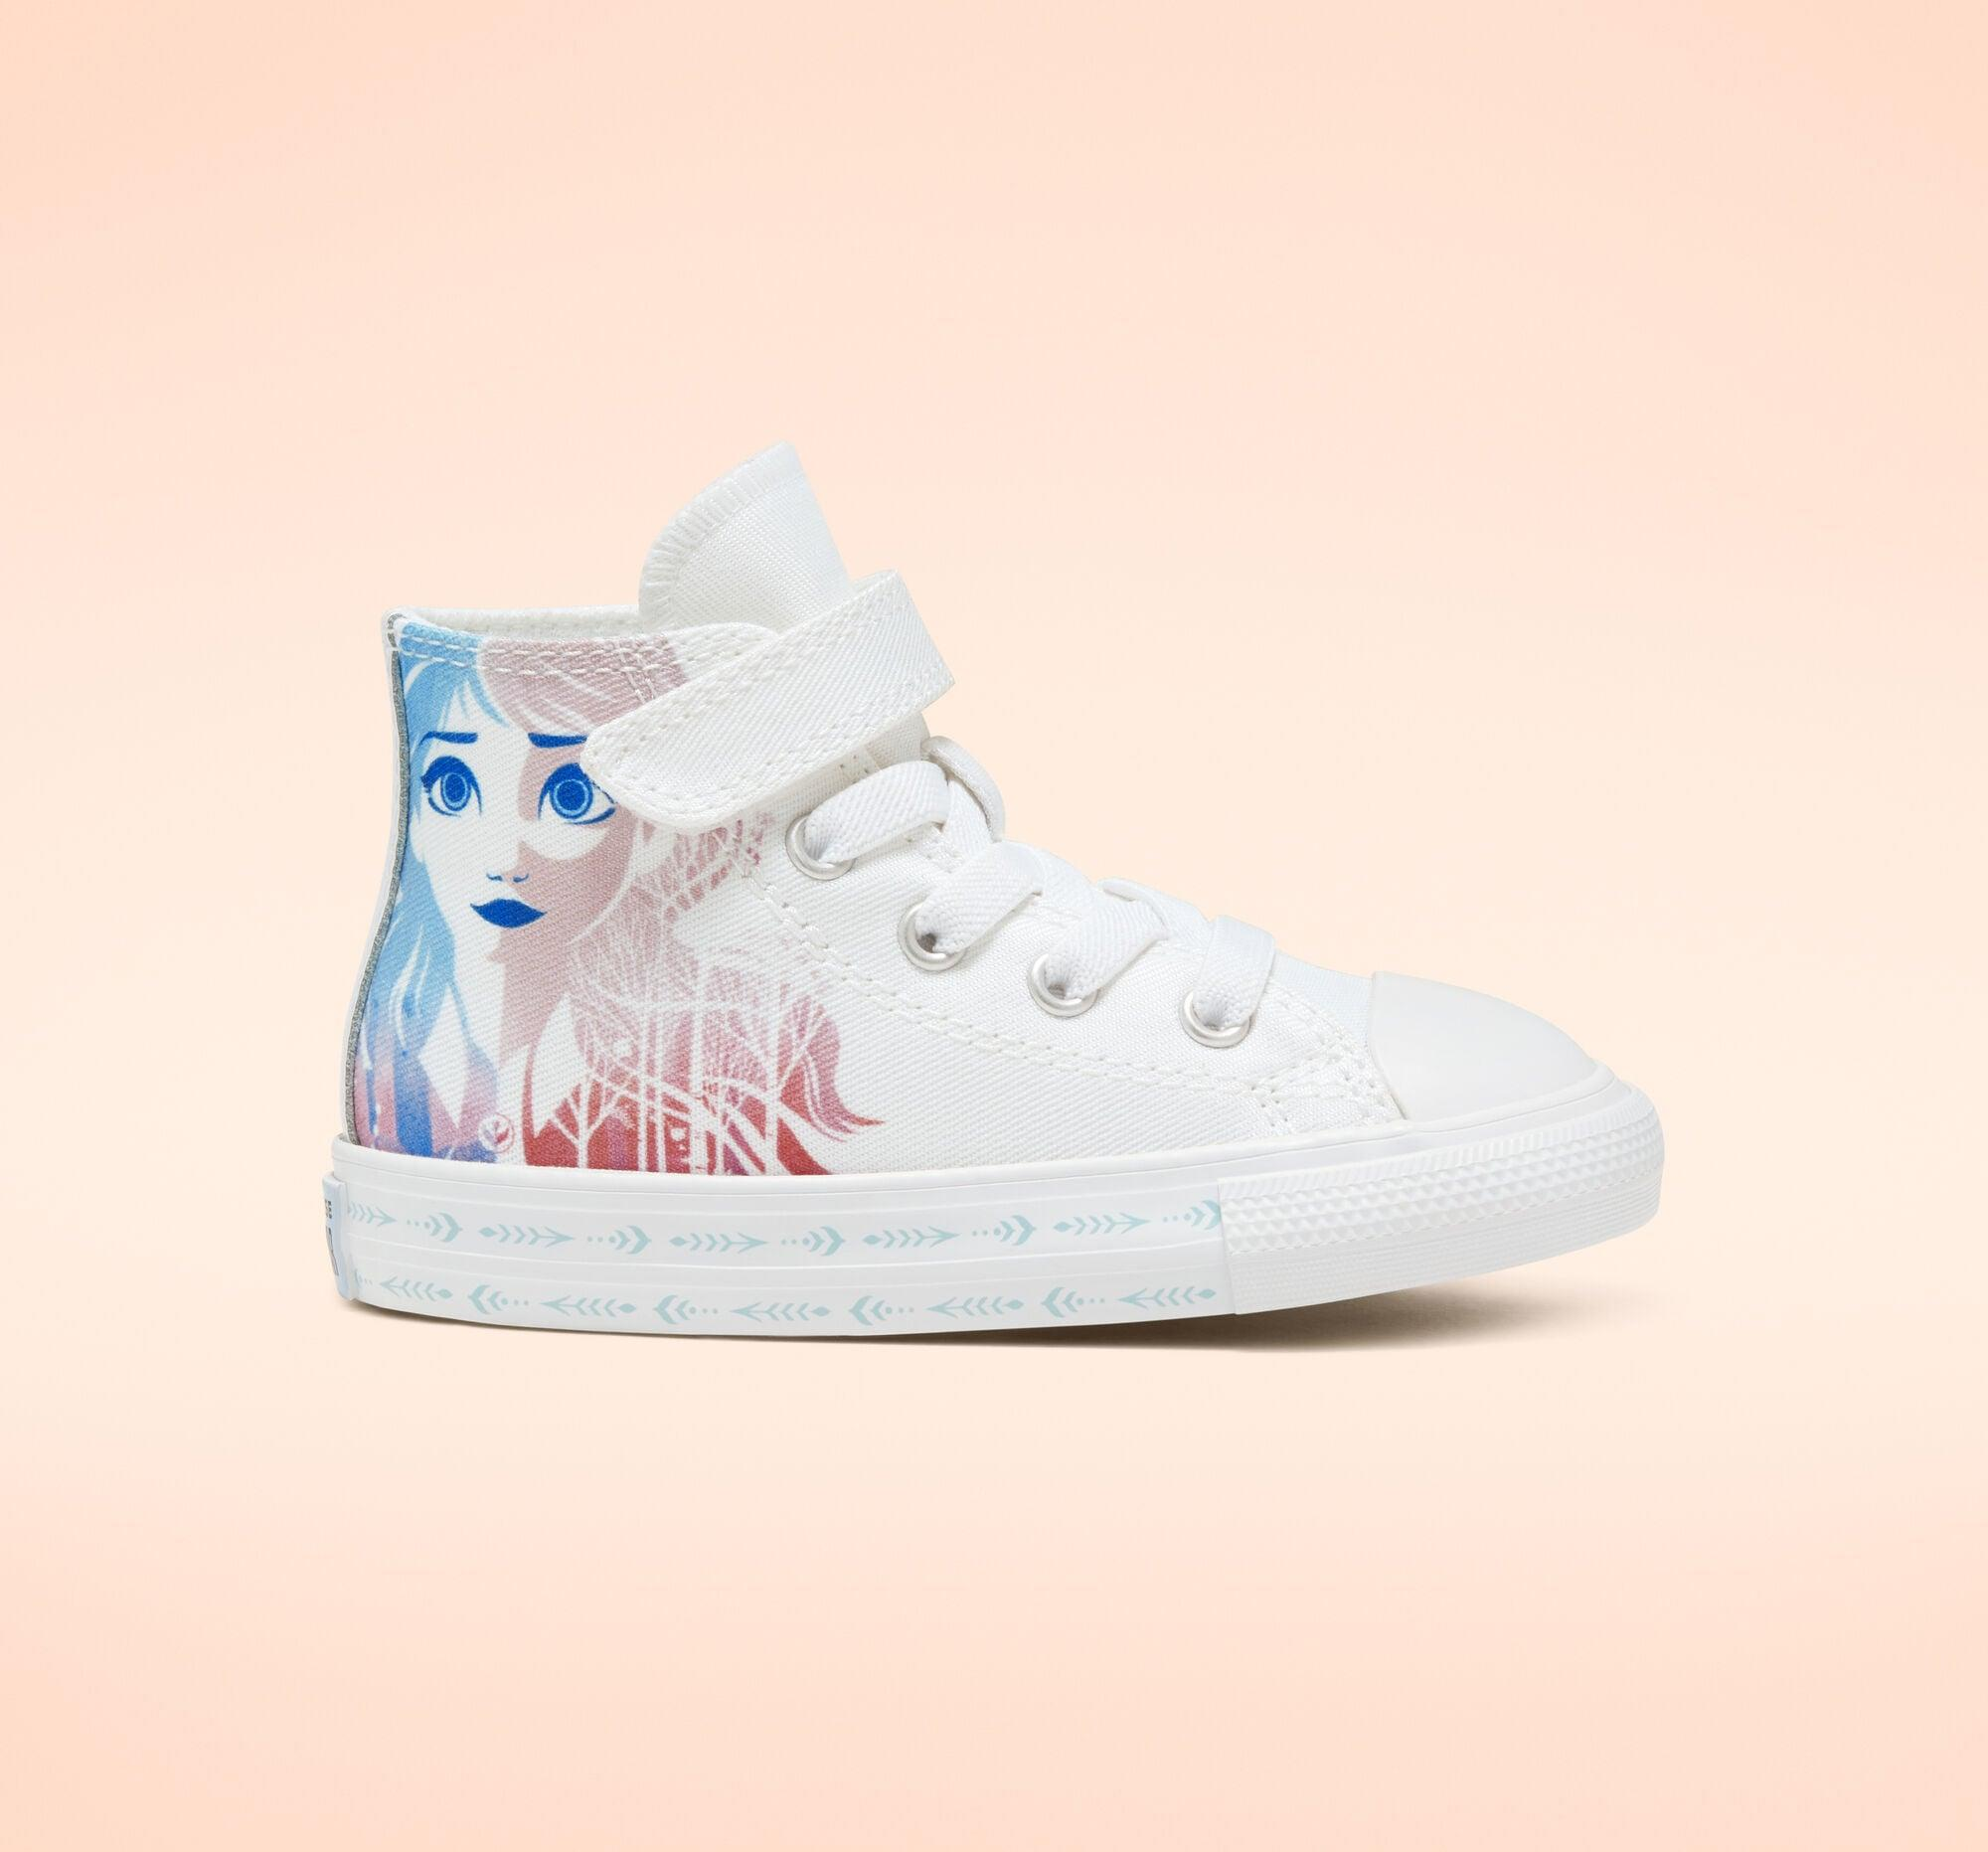 Converse Released Frozen 2 Styles For Kids, and Awww, Look